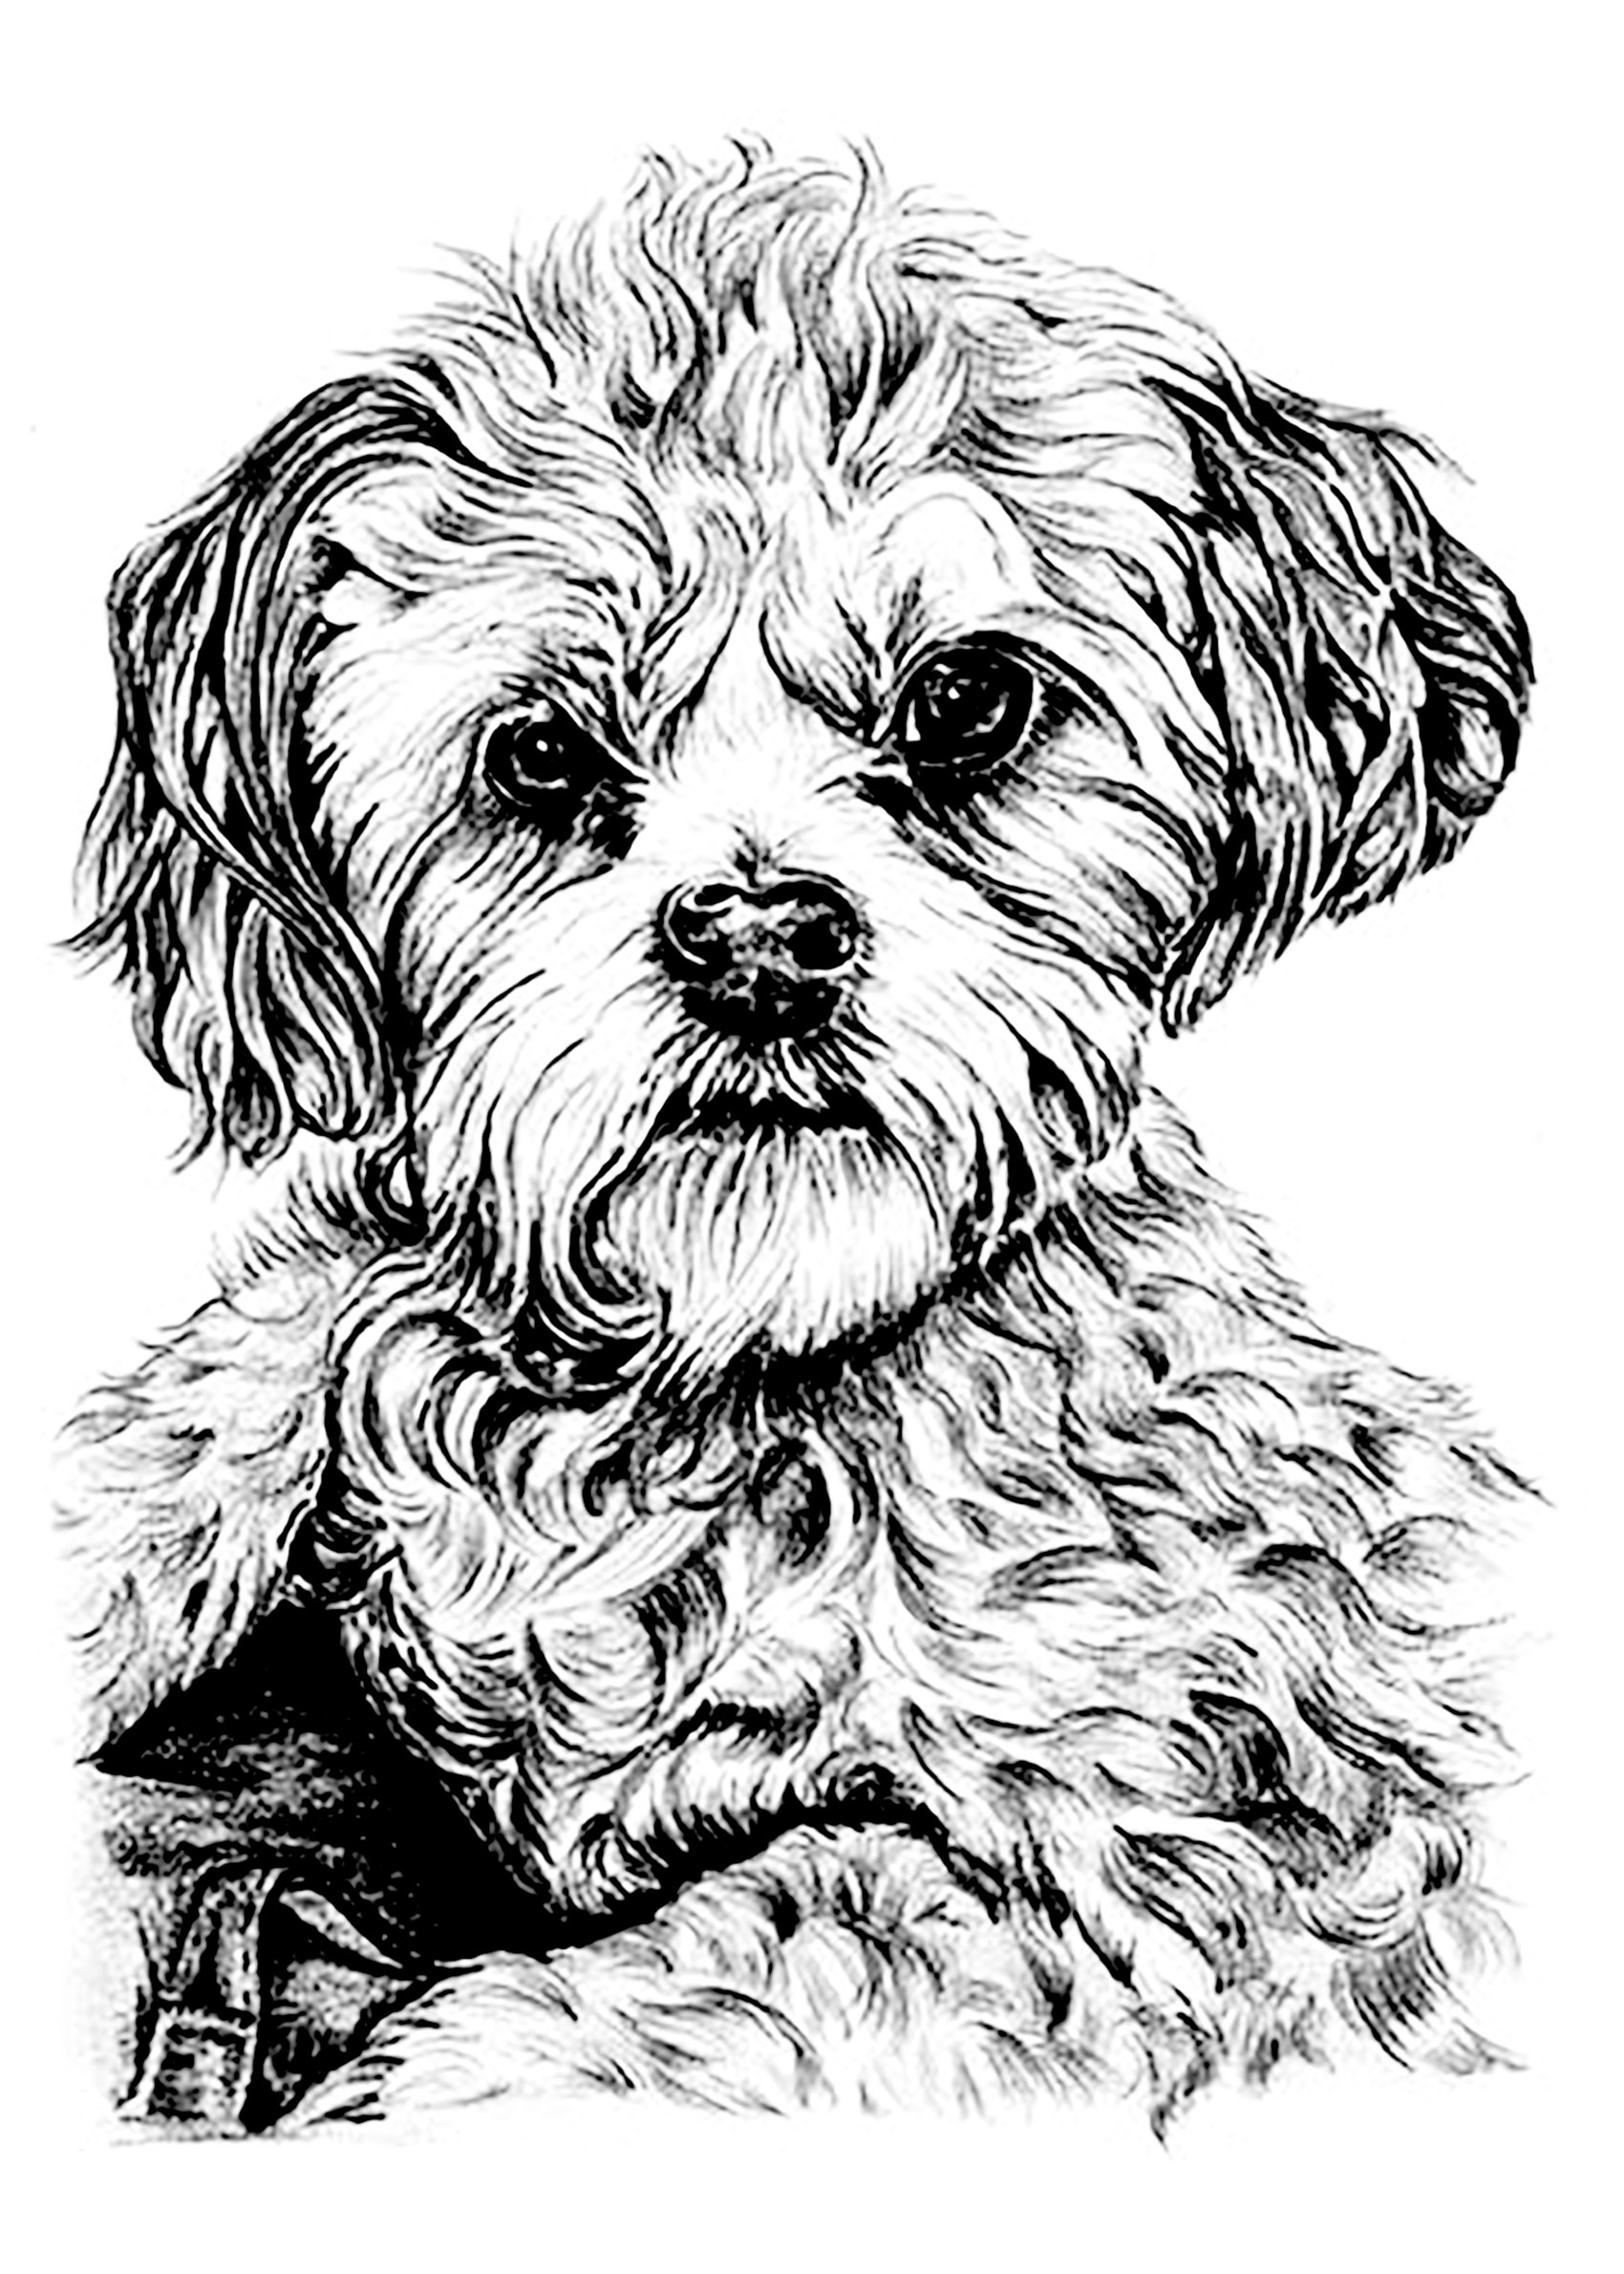 Fantastic Adults Free Dog Coloring Sheets Color Dog Dogs Adult Coloring Pages Dog Coloring Pages Adults Dog Portrait To Print bark post Dog Coloring Pages For Adults